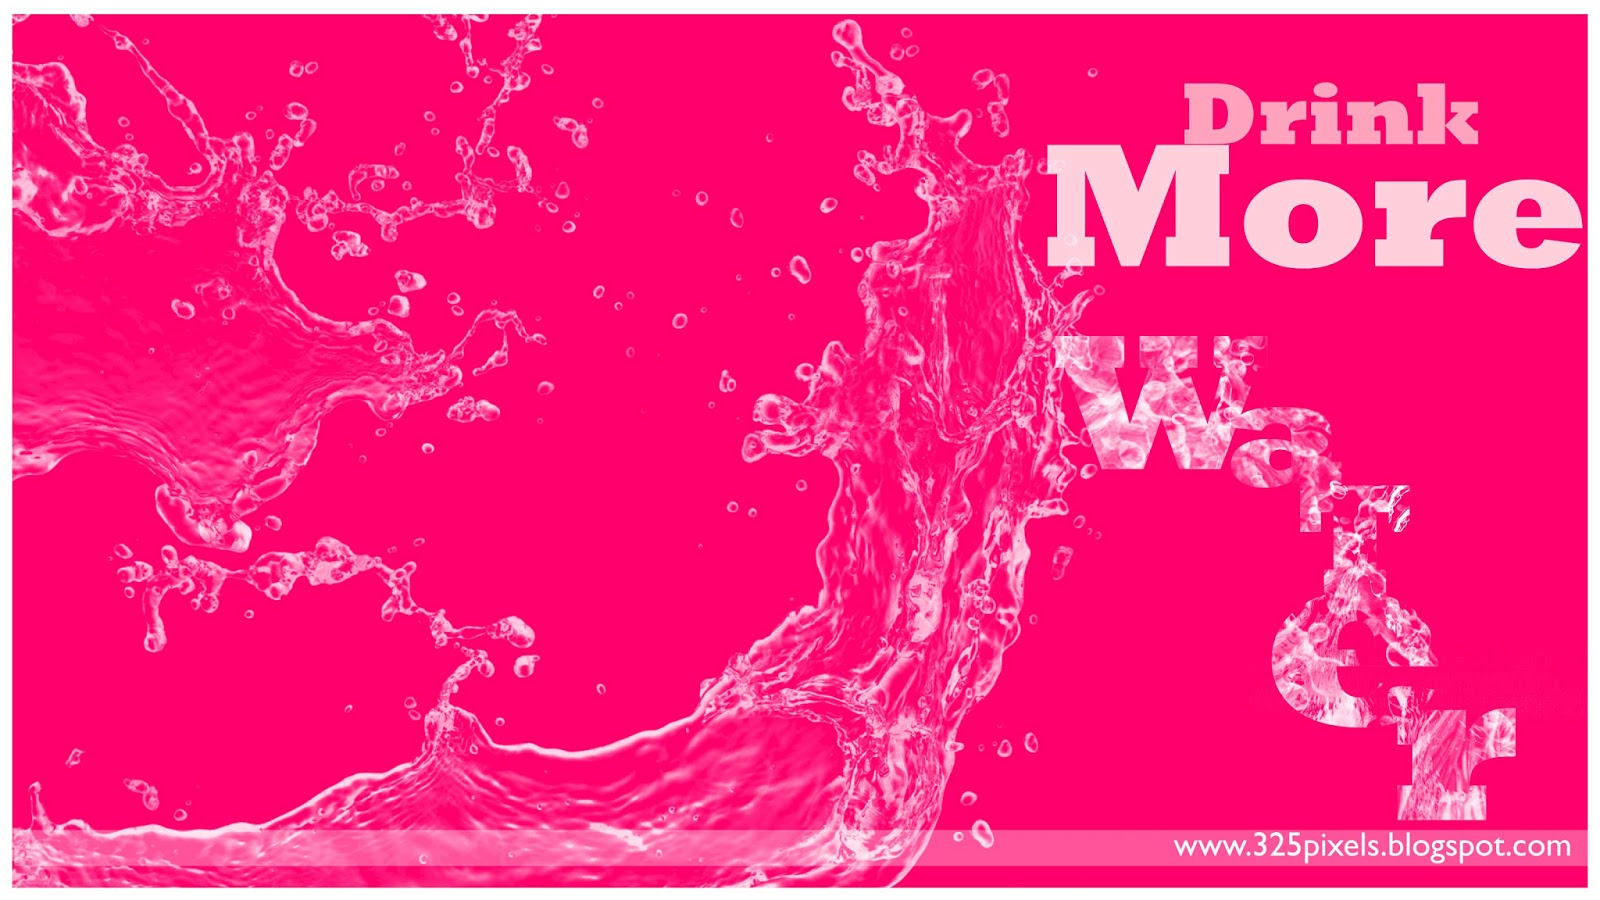 325 pixels hd wallpapers and images free download drink more water tips on - Tips finding best wallpaper ...